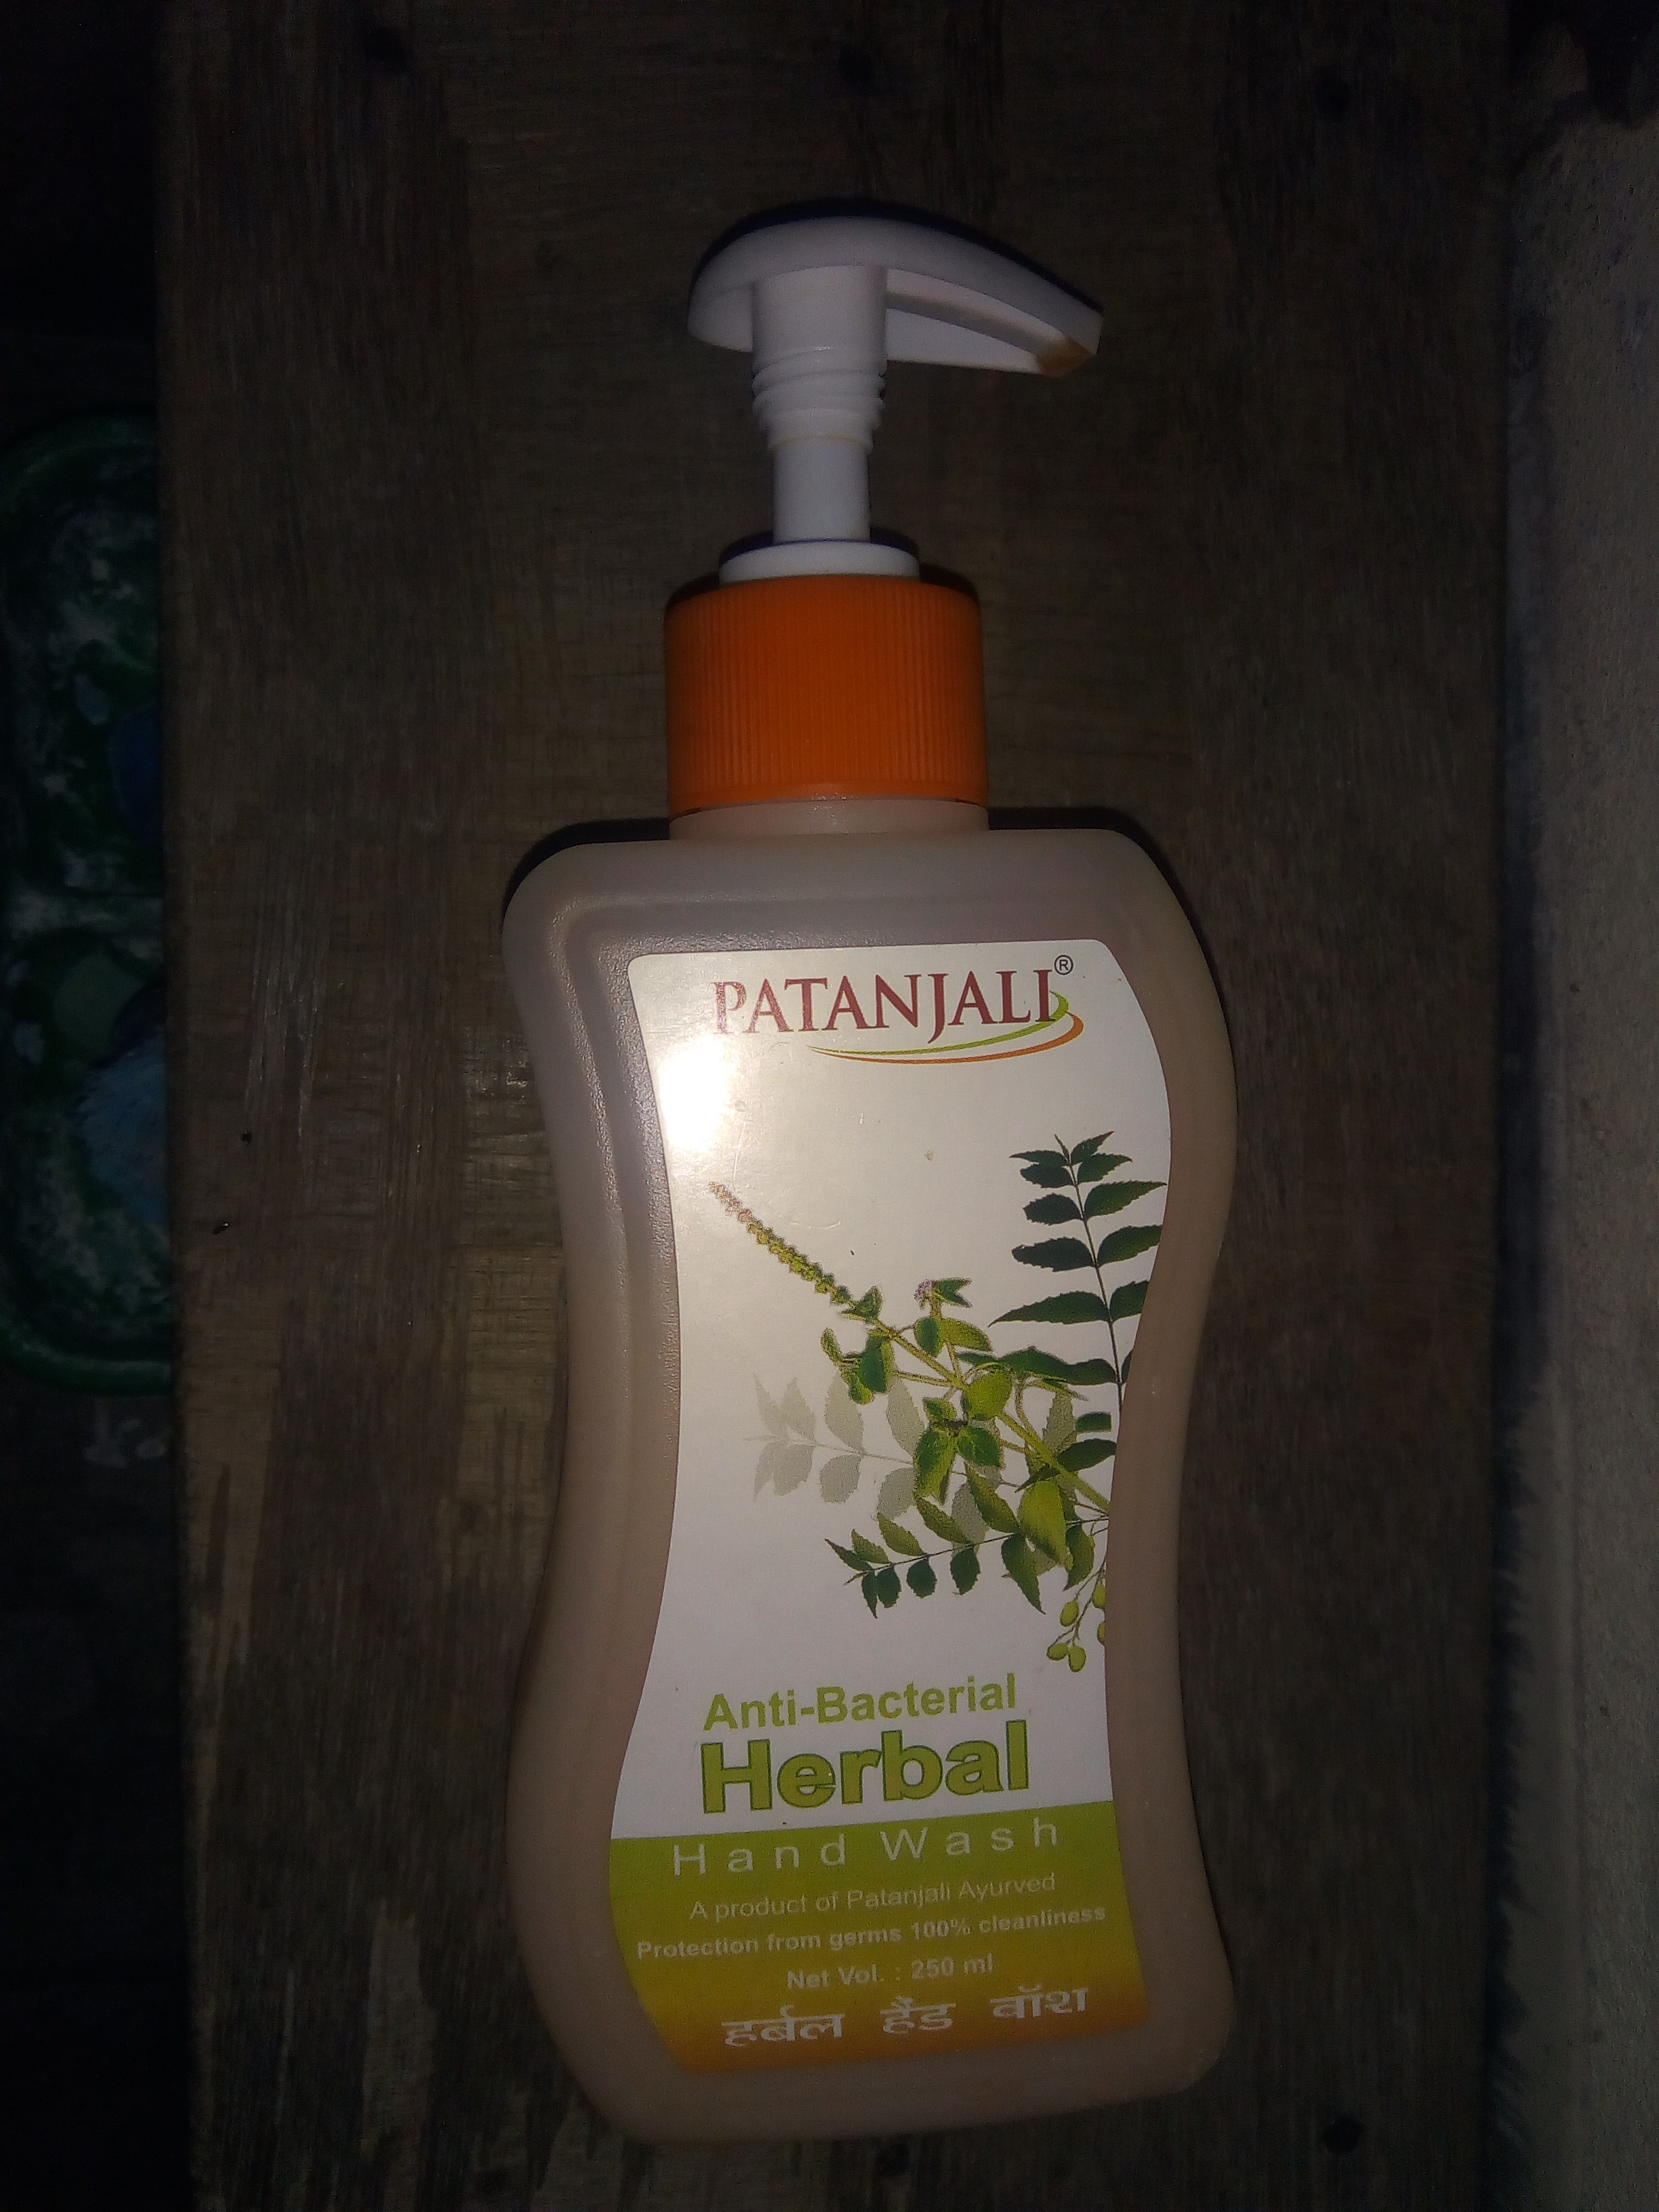 Patanjali Herbal Hand Wash-Patanjali Herbal Hand Wash-By aflyingsoul